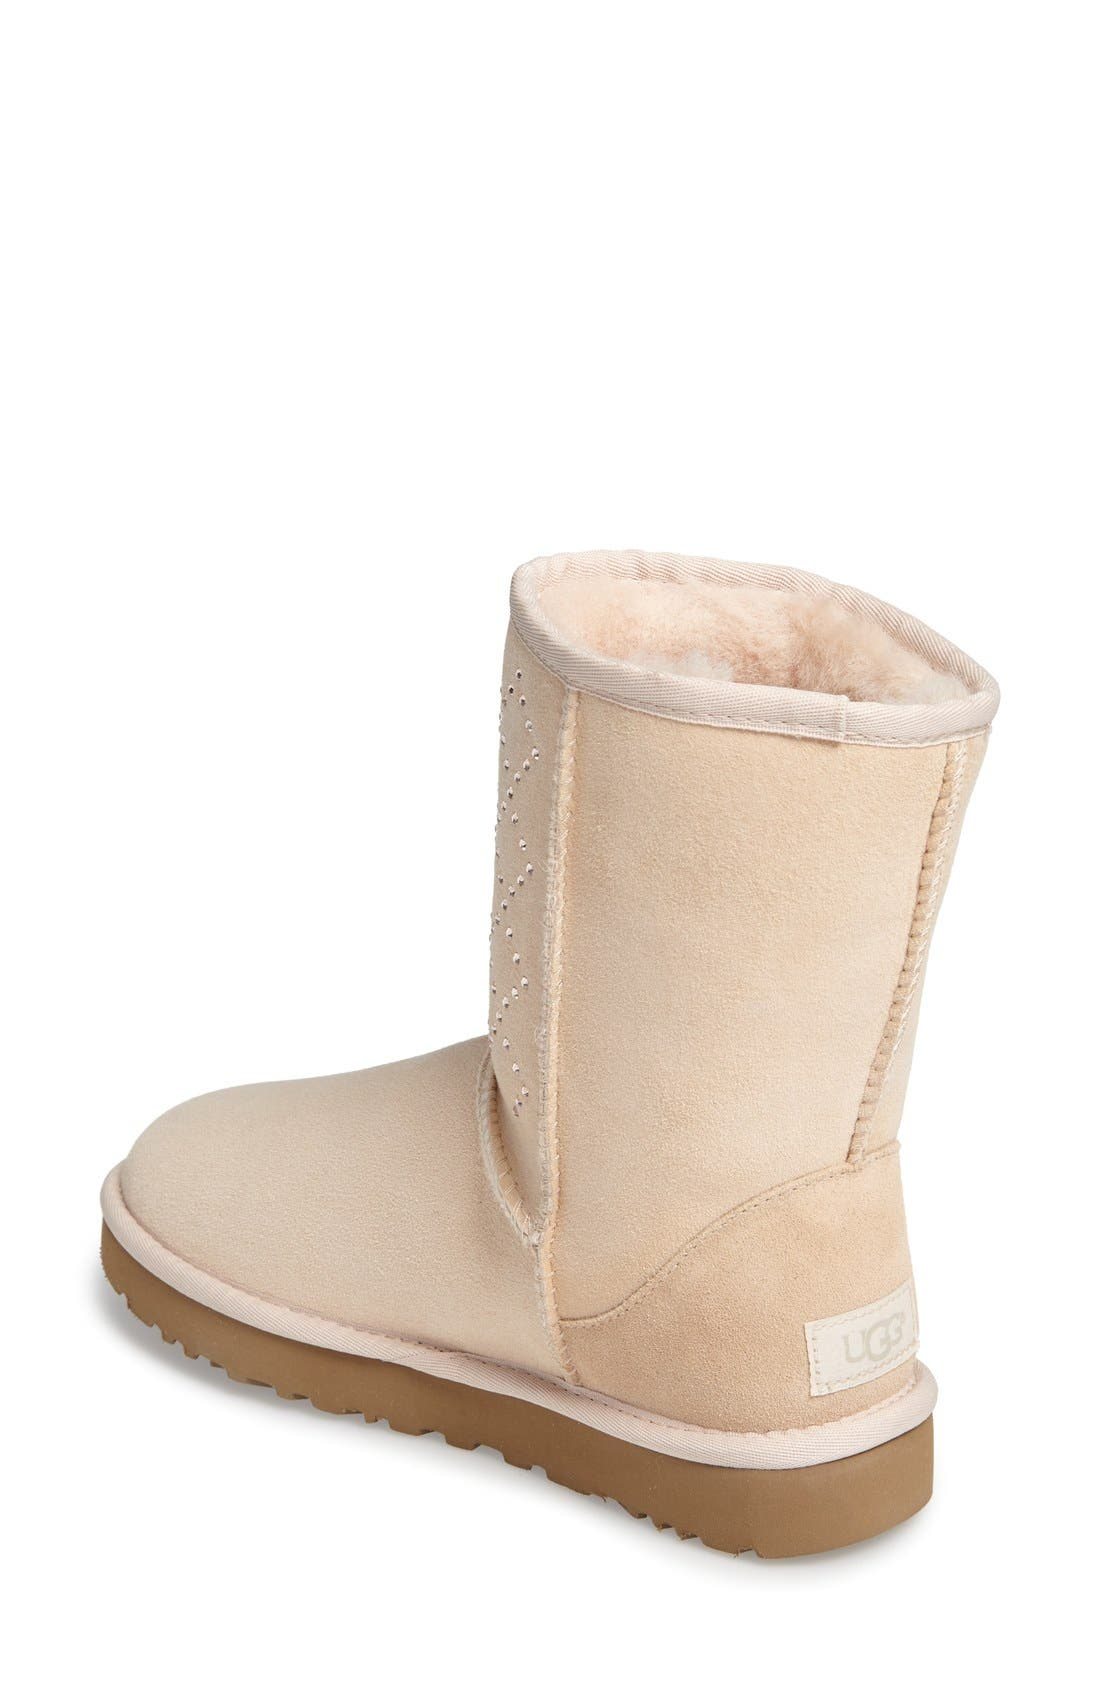 Alternate Image 2  - UGG® Classic Short - Crystal Genuine Shearling Lined Boot (Women)